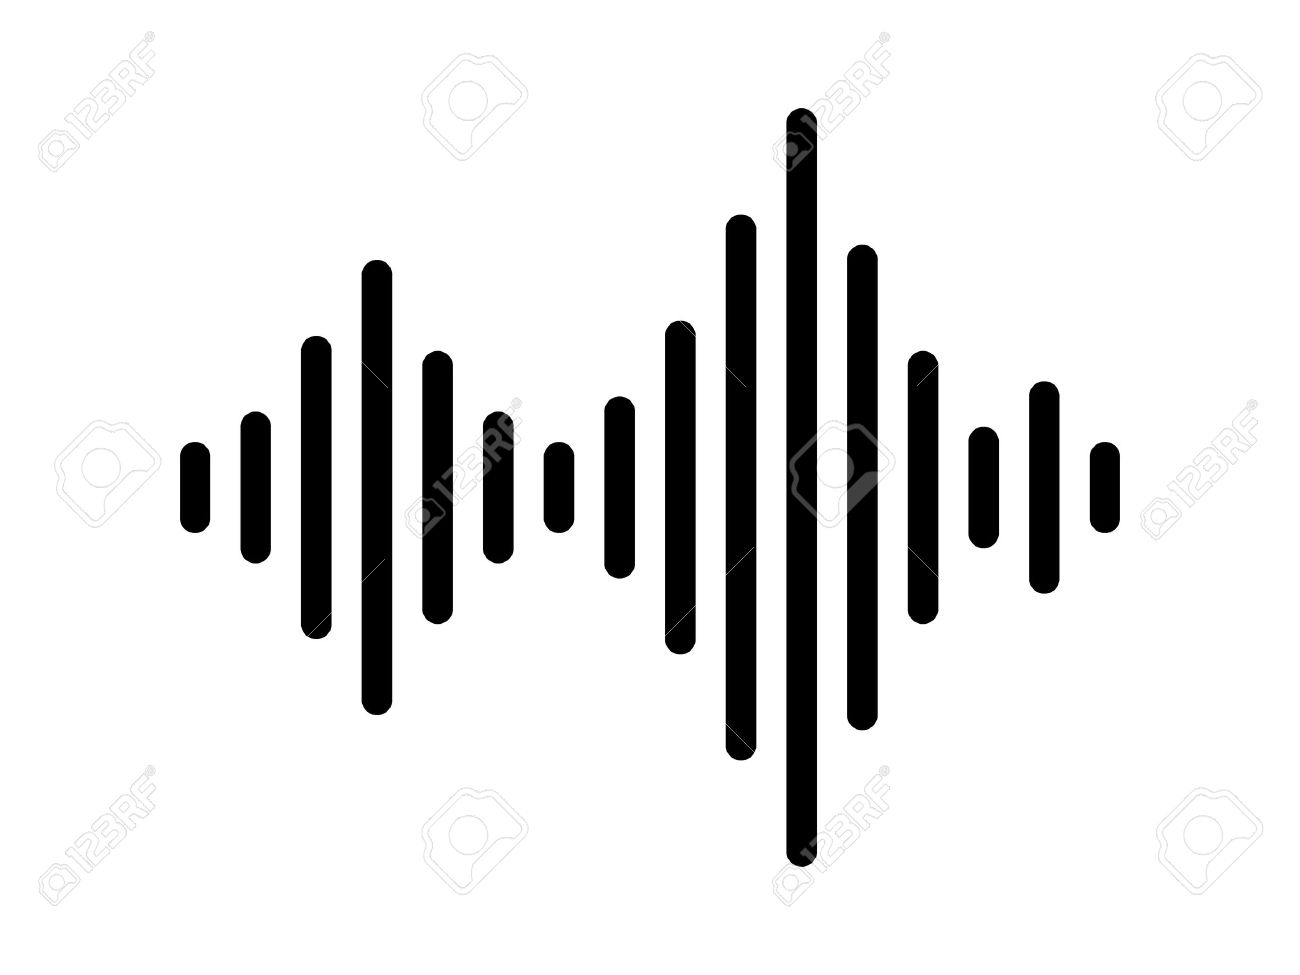 sound audio wave or soundwave line art vector icon for music rh 123rf com sound wave vector graphic free sound wave vector png